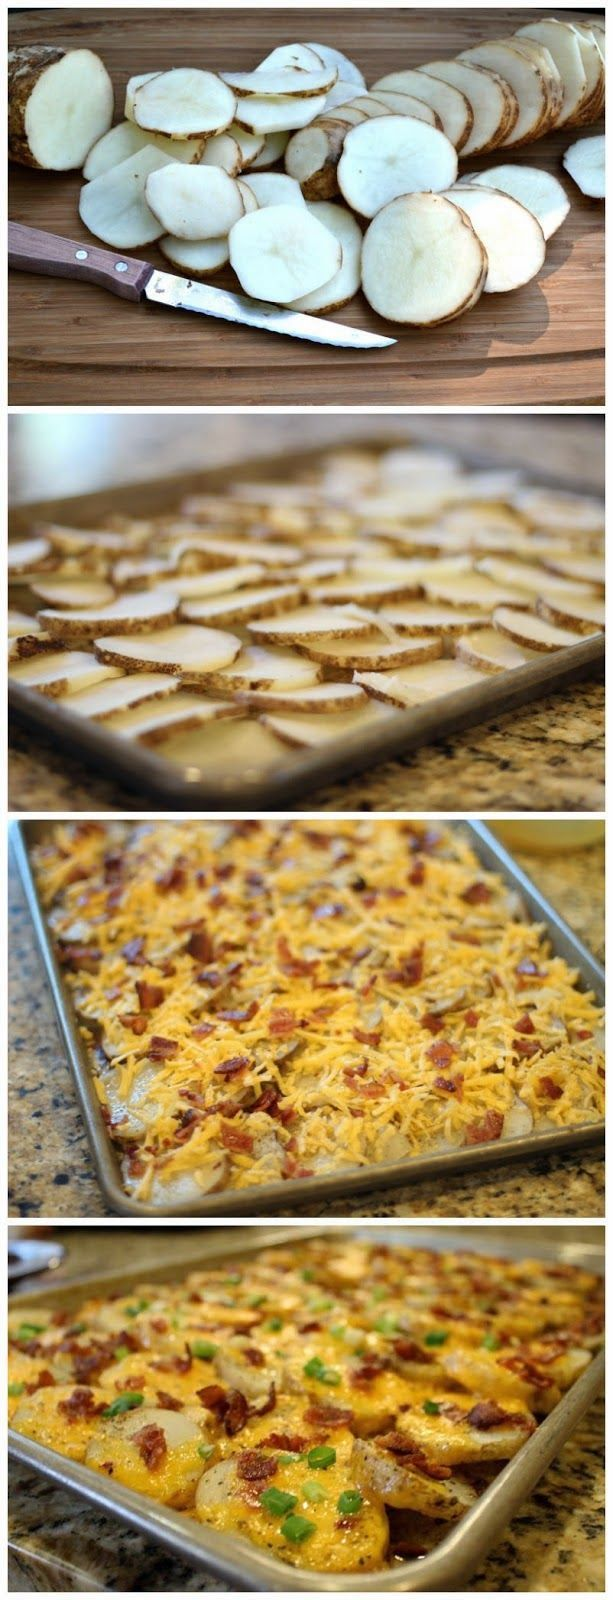 Next time, I will bake the potatoes ON THEIR OWN for 10-15minto get crispy. Then I'll add cheese and bacon